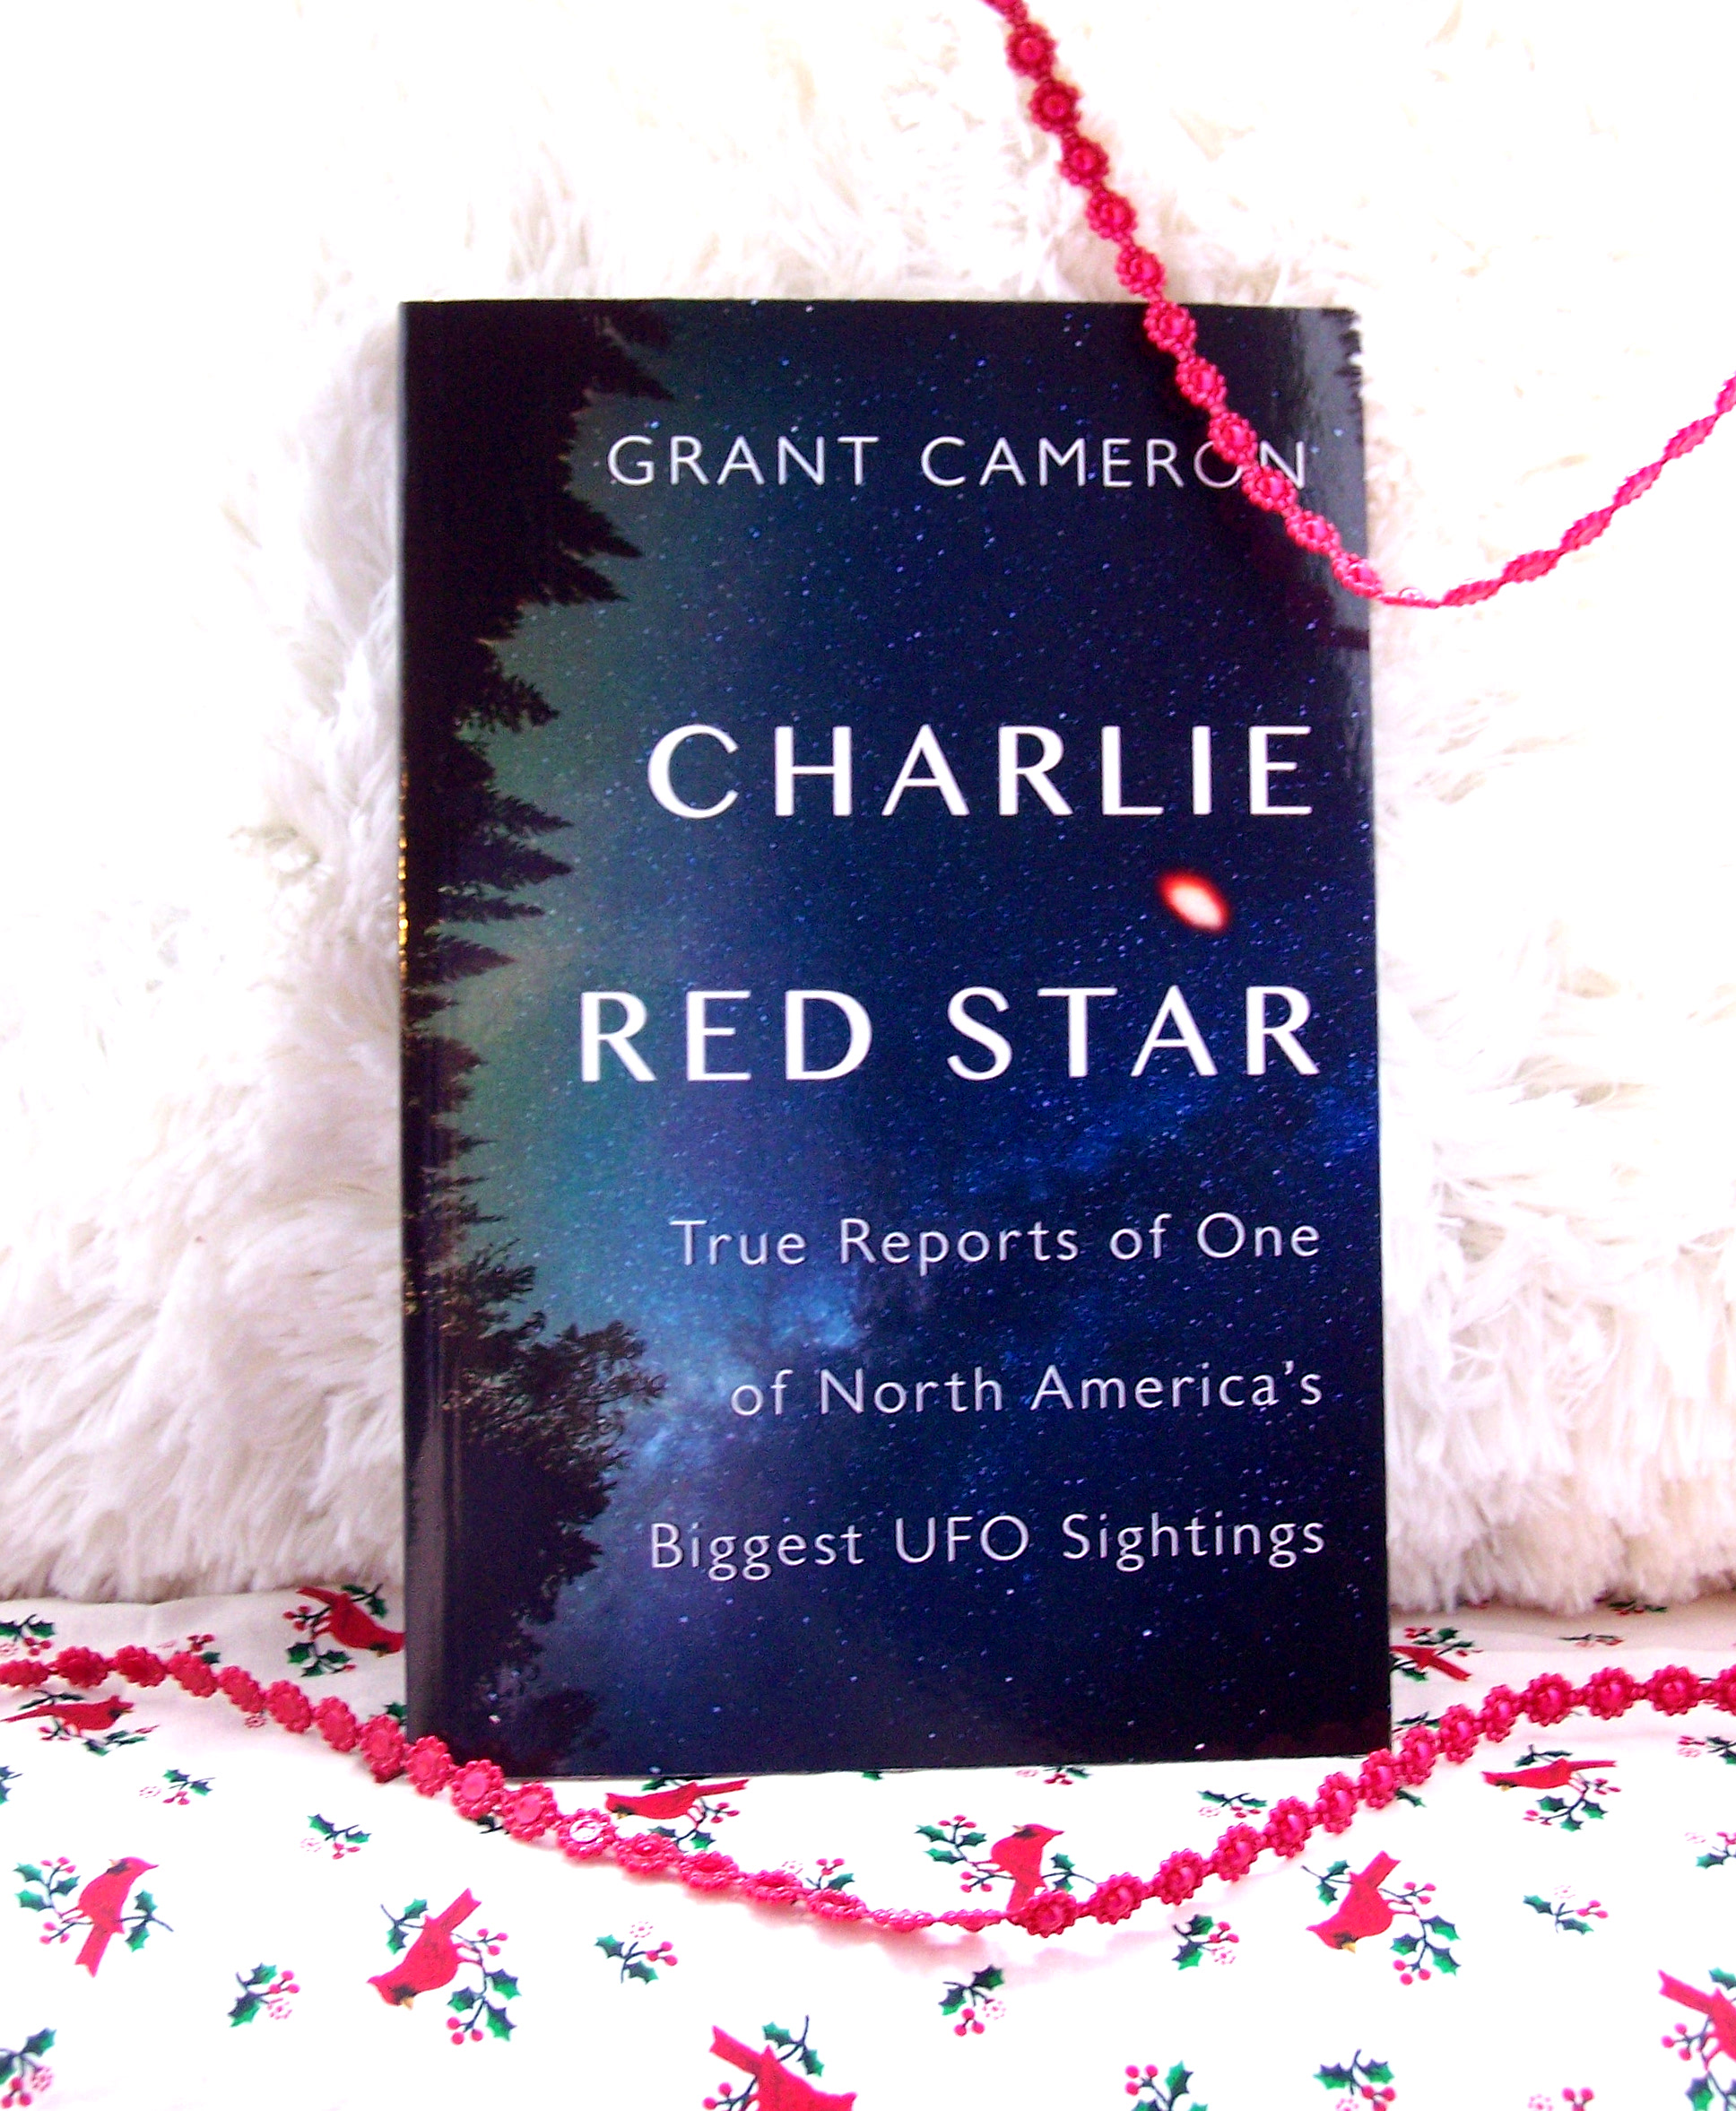 charlie red star books nonfiction ufo ufos ships spaceships nuclear canada reading reviews giveaway holiday gift guide